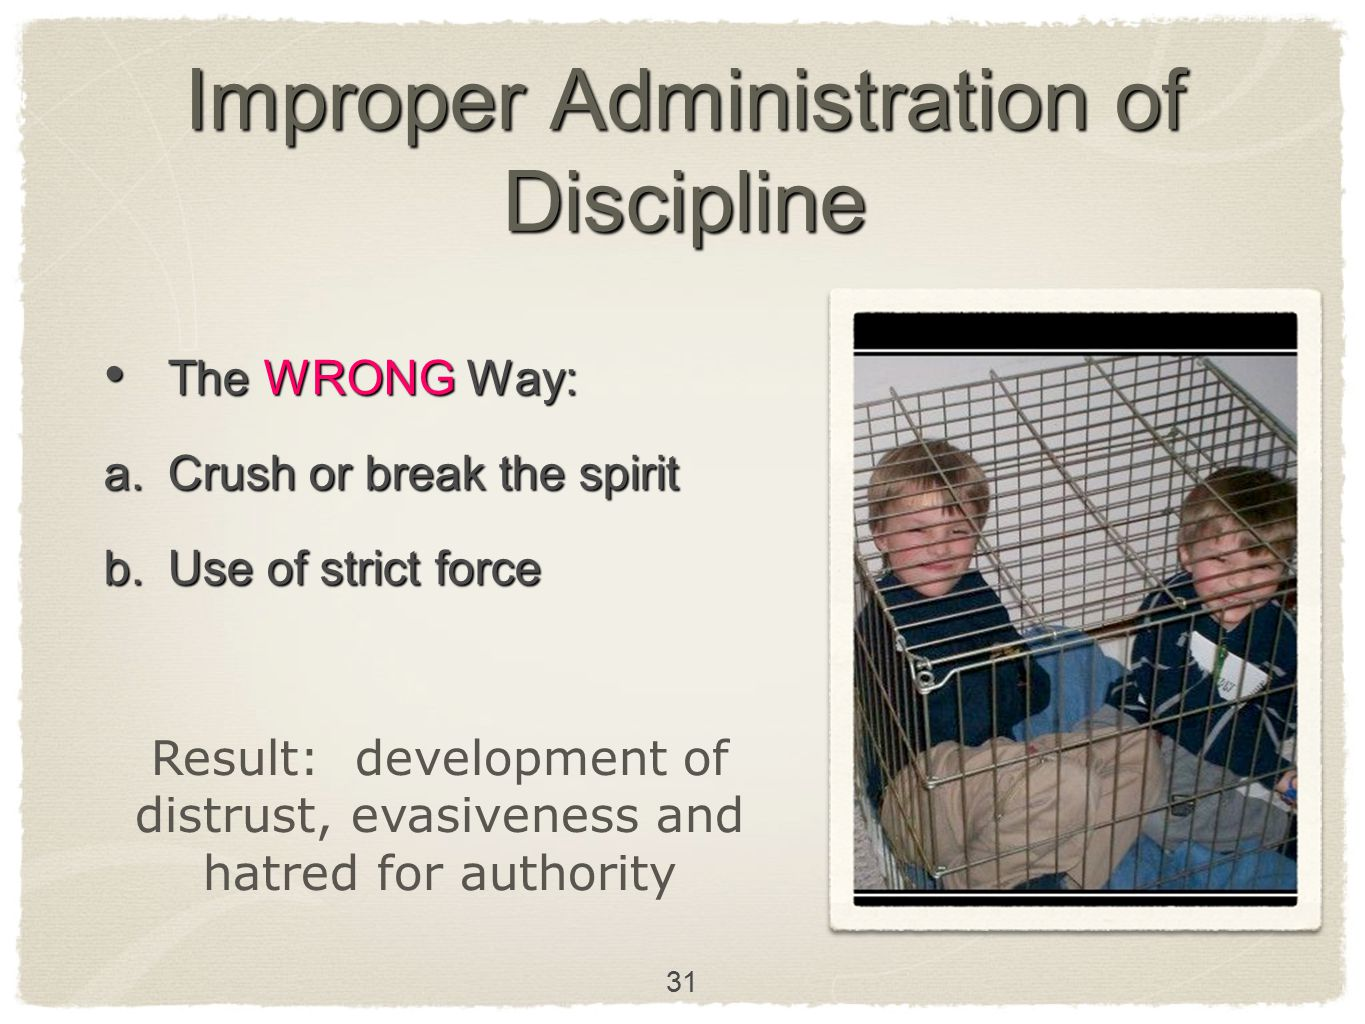 31 Improper Administration of Discipline The WRONG Way: The WRONG Way: a. Crush or break the spirit b. Use of strict force Result: development of dist